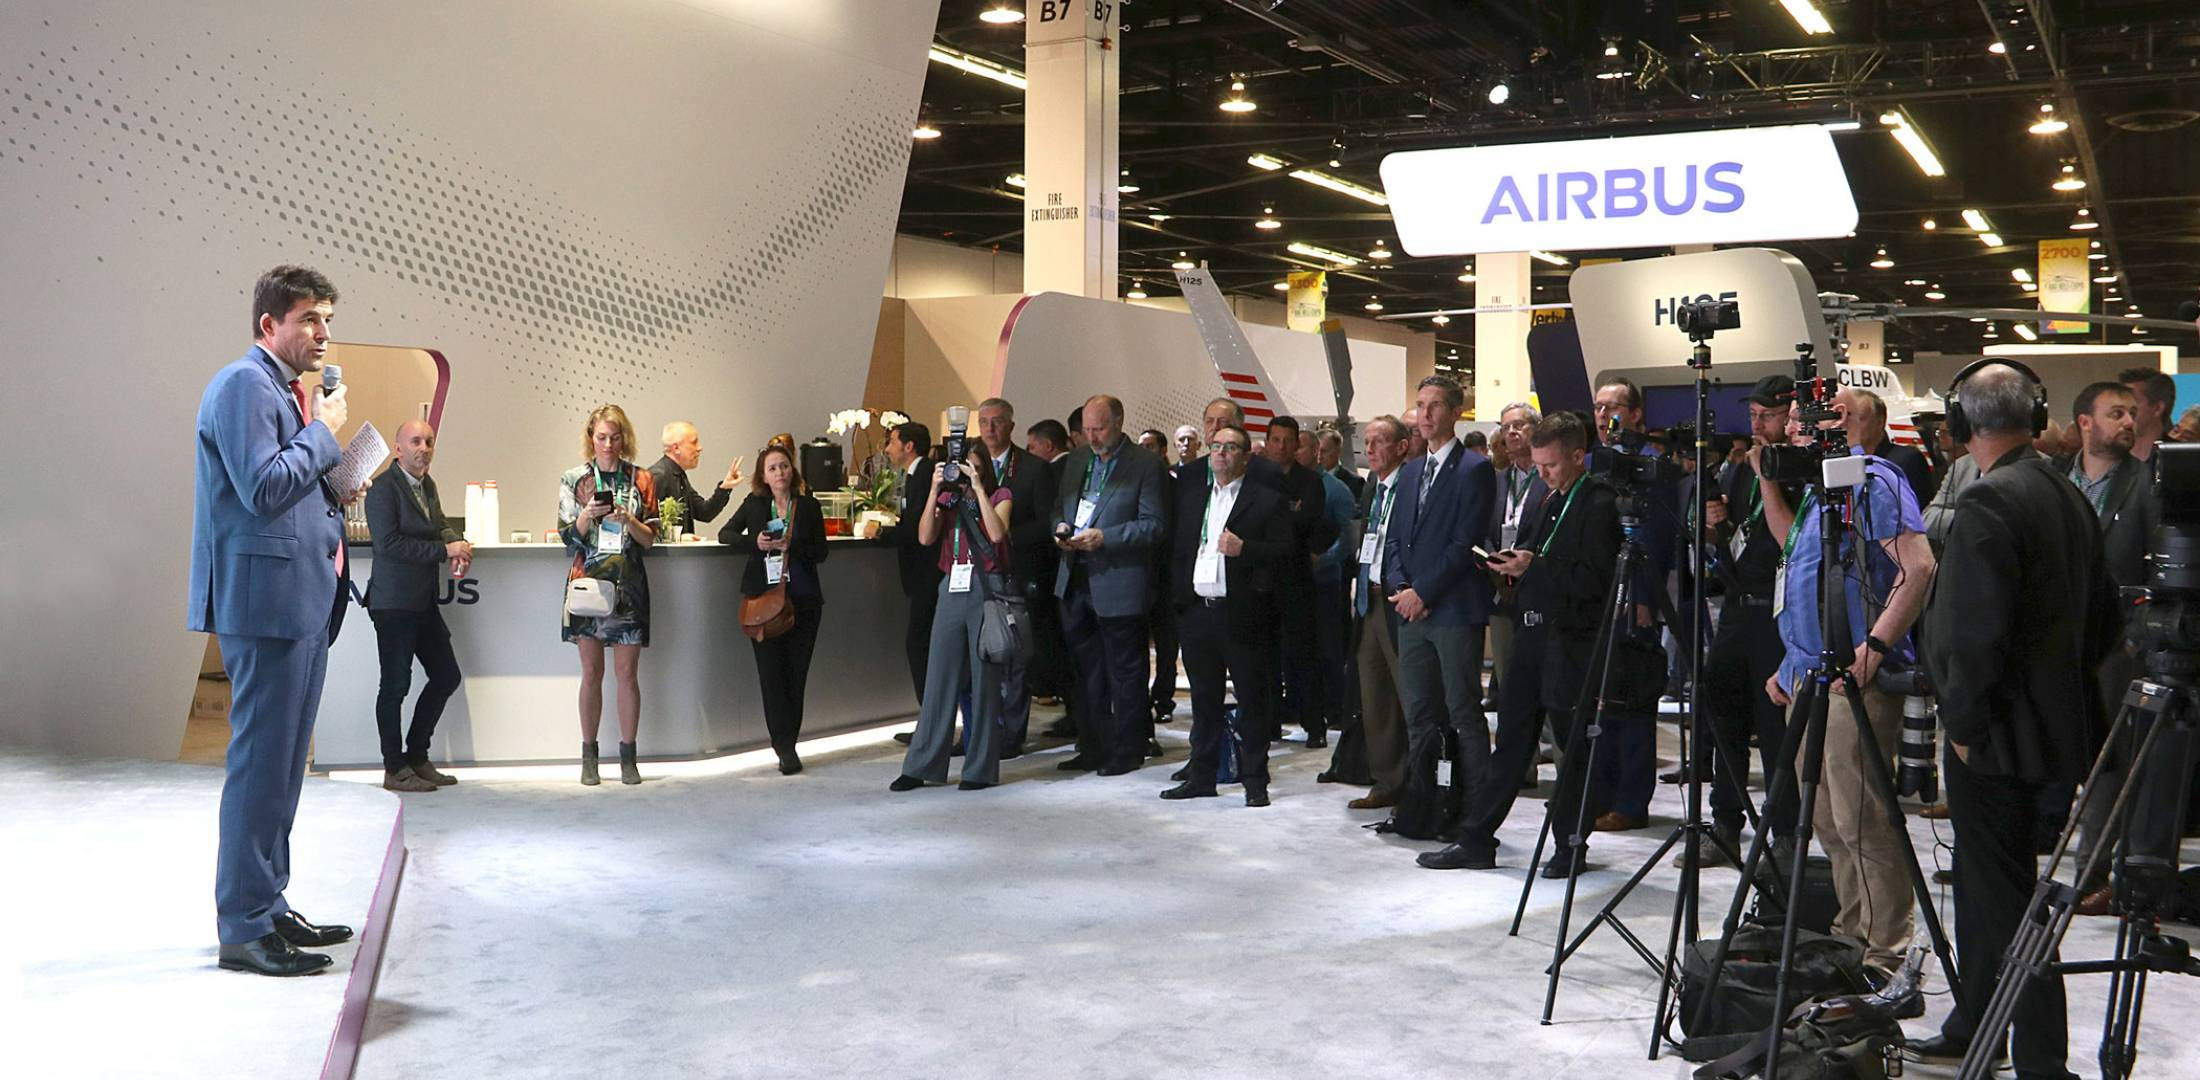 Airbus Helicopters CEO Bruno Even Photo: Barry Ambrose